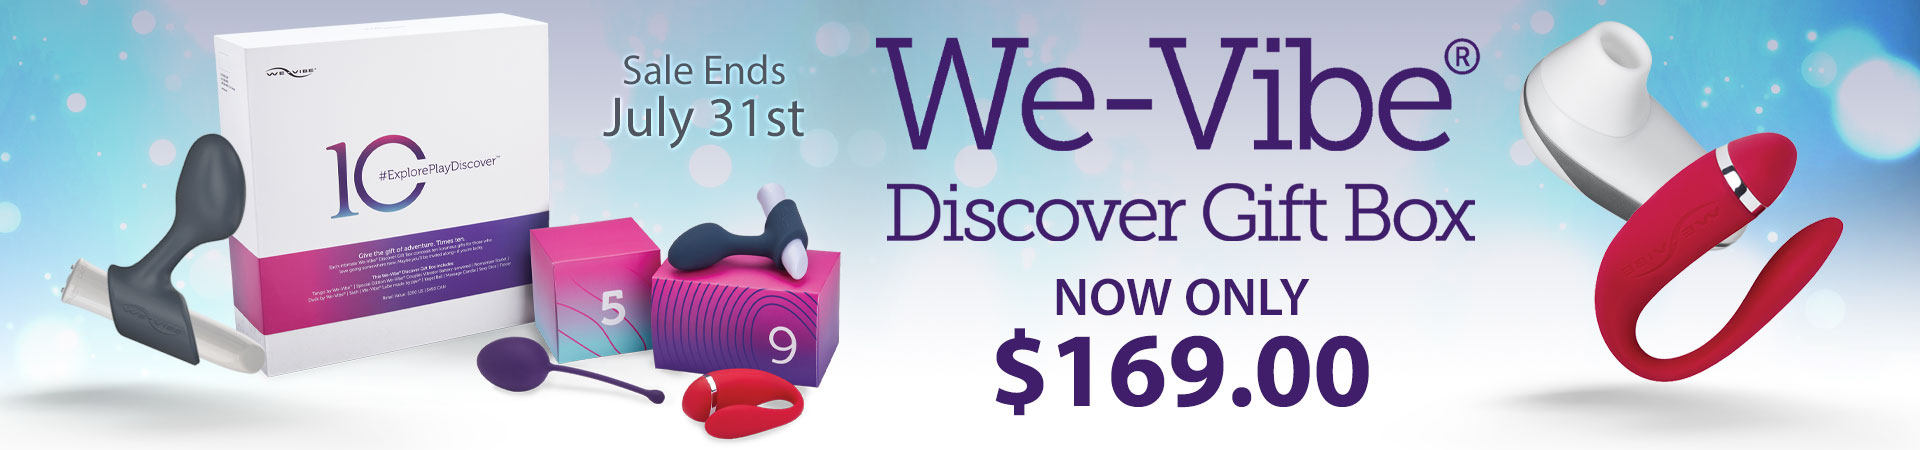 We-Vibe Discover Gift Box Now Only $169.00 - Ends July 31st